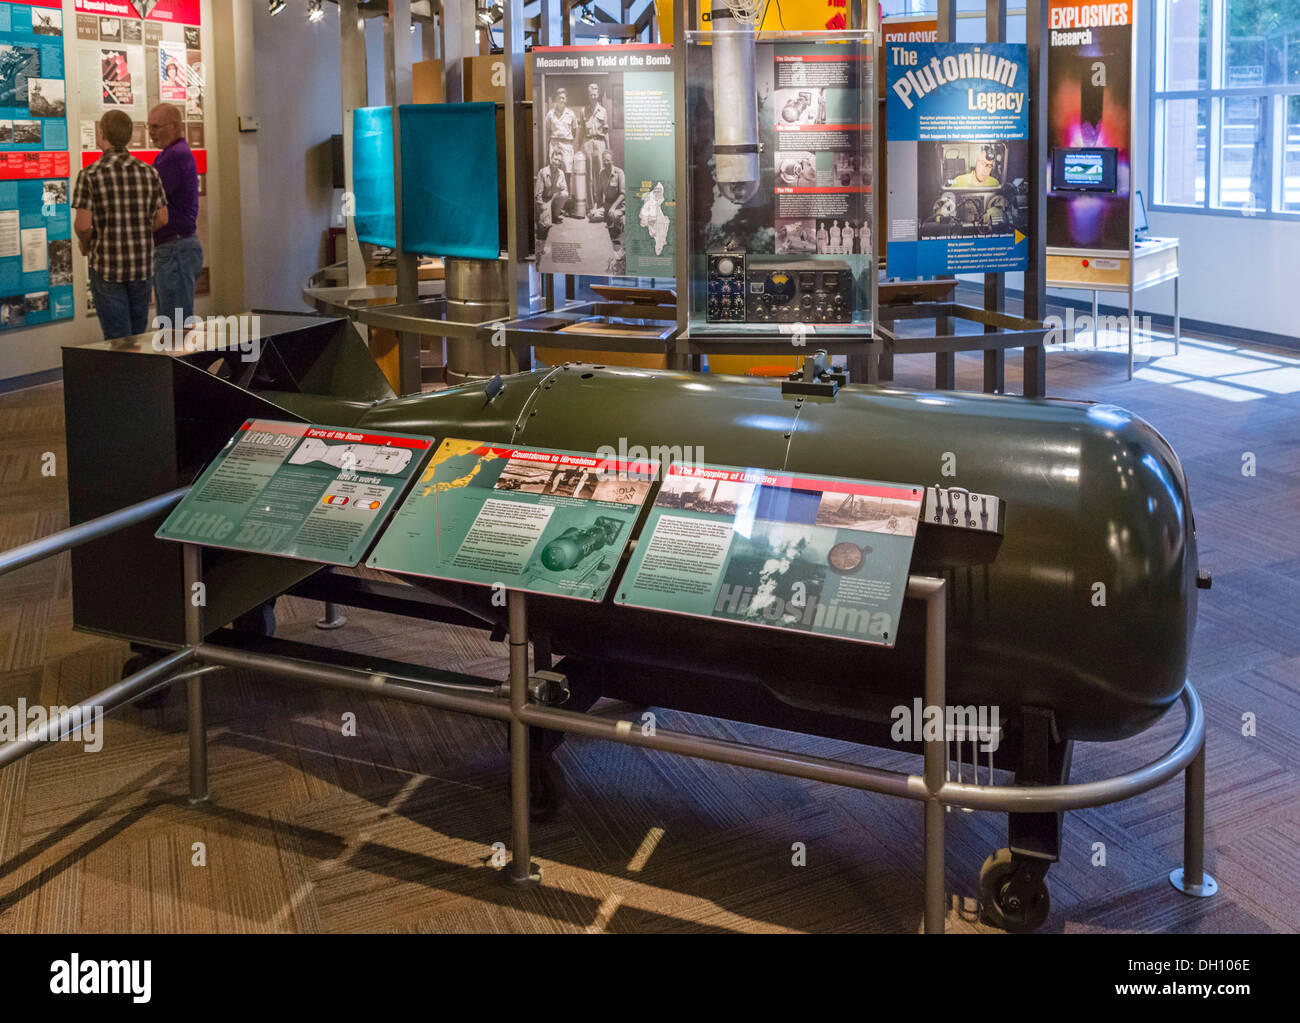 Model of the atomic bomb 'Little Boy' dropped on Japan in WWII, The Bradbury Science Museum, Los Alamos, - Stock Image